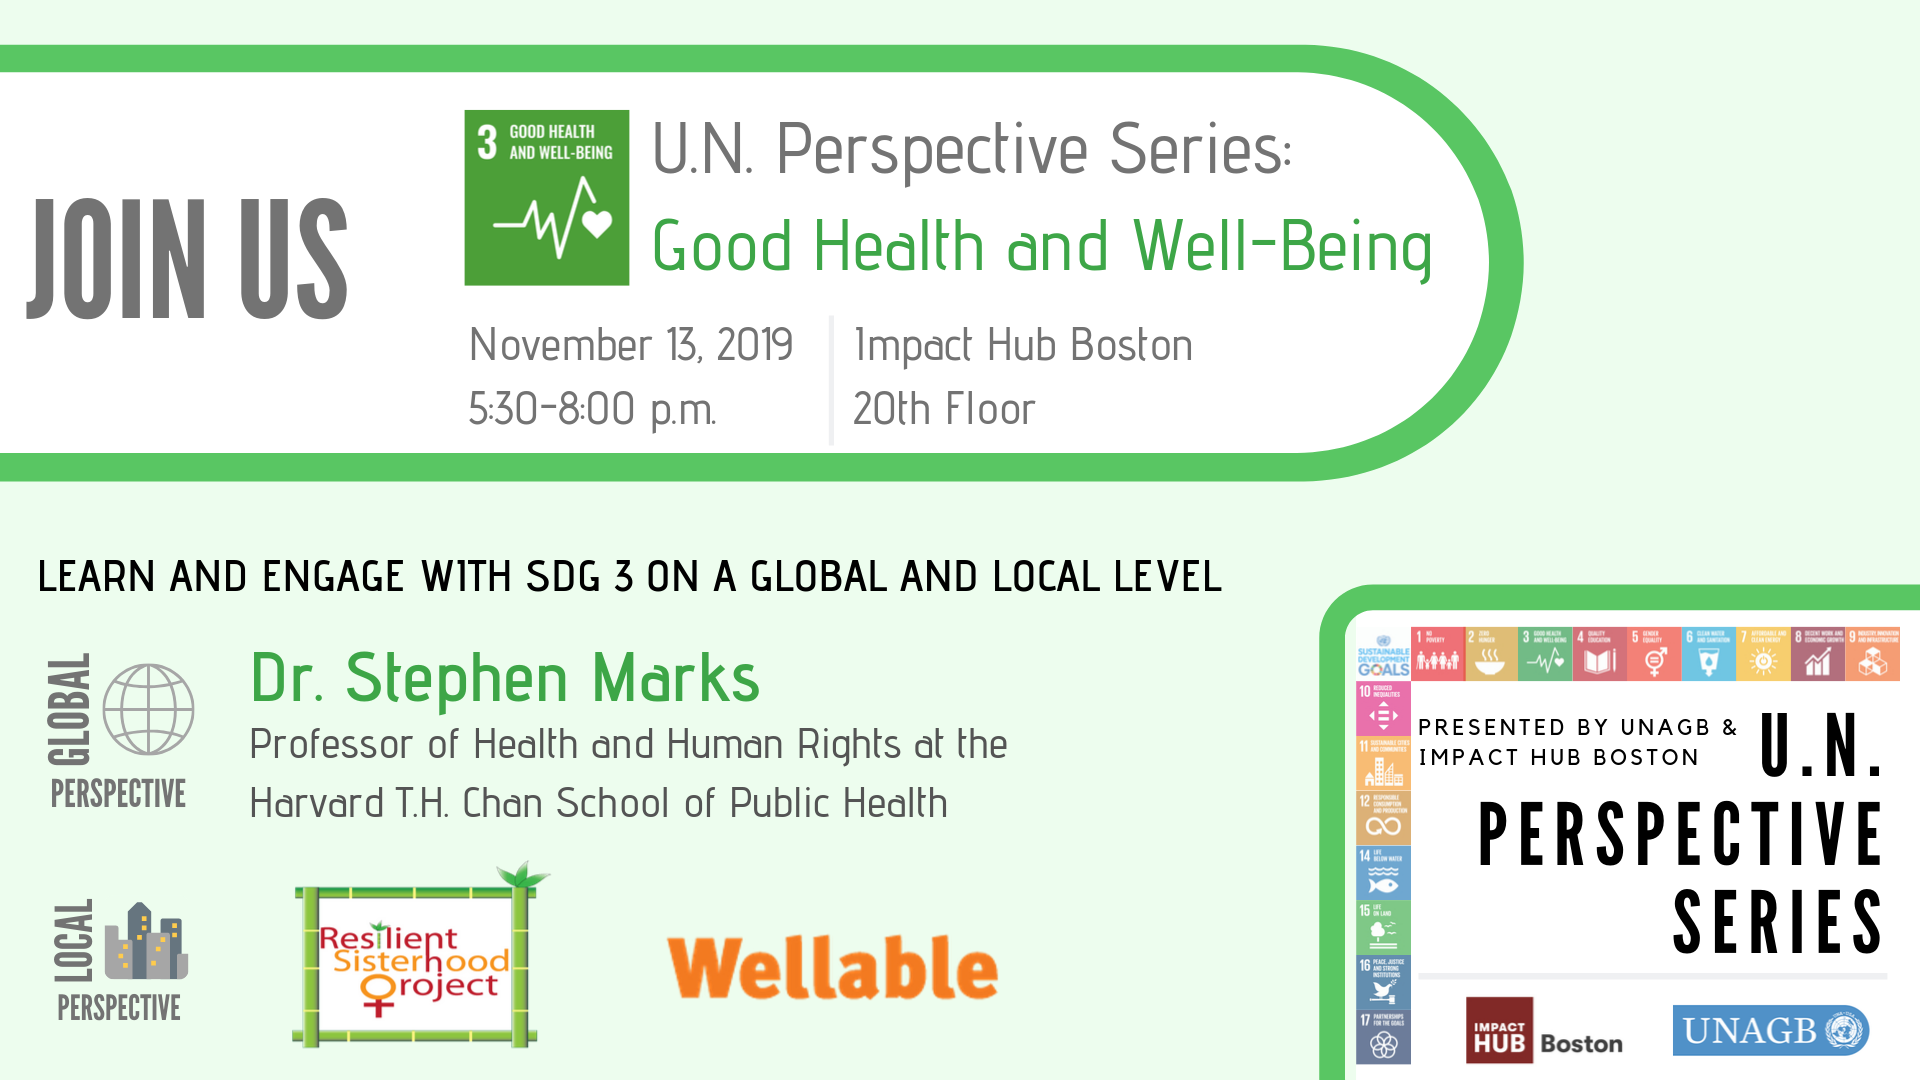 UN Perspective Series: Good Health and Well-Being